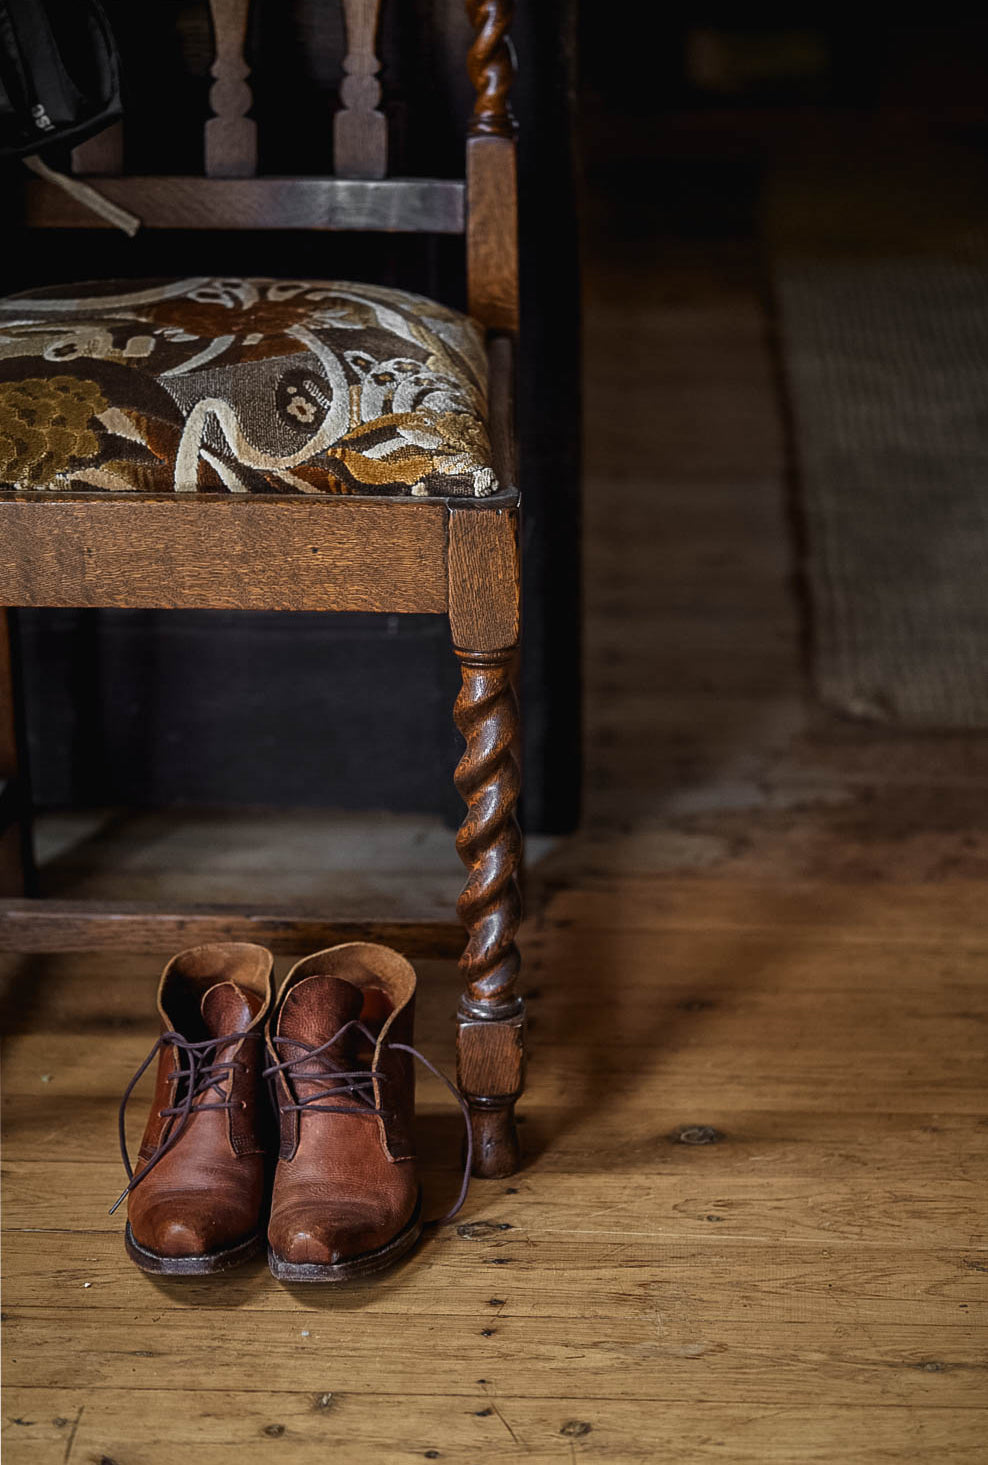 An antique wooden chair with a velvet seat and pair of handmade cowboy boots underneath